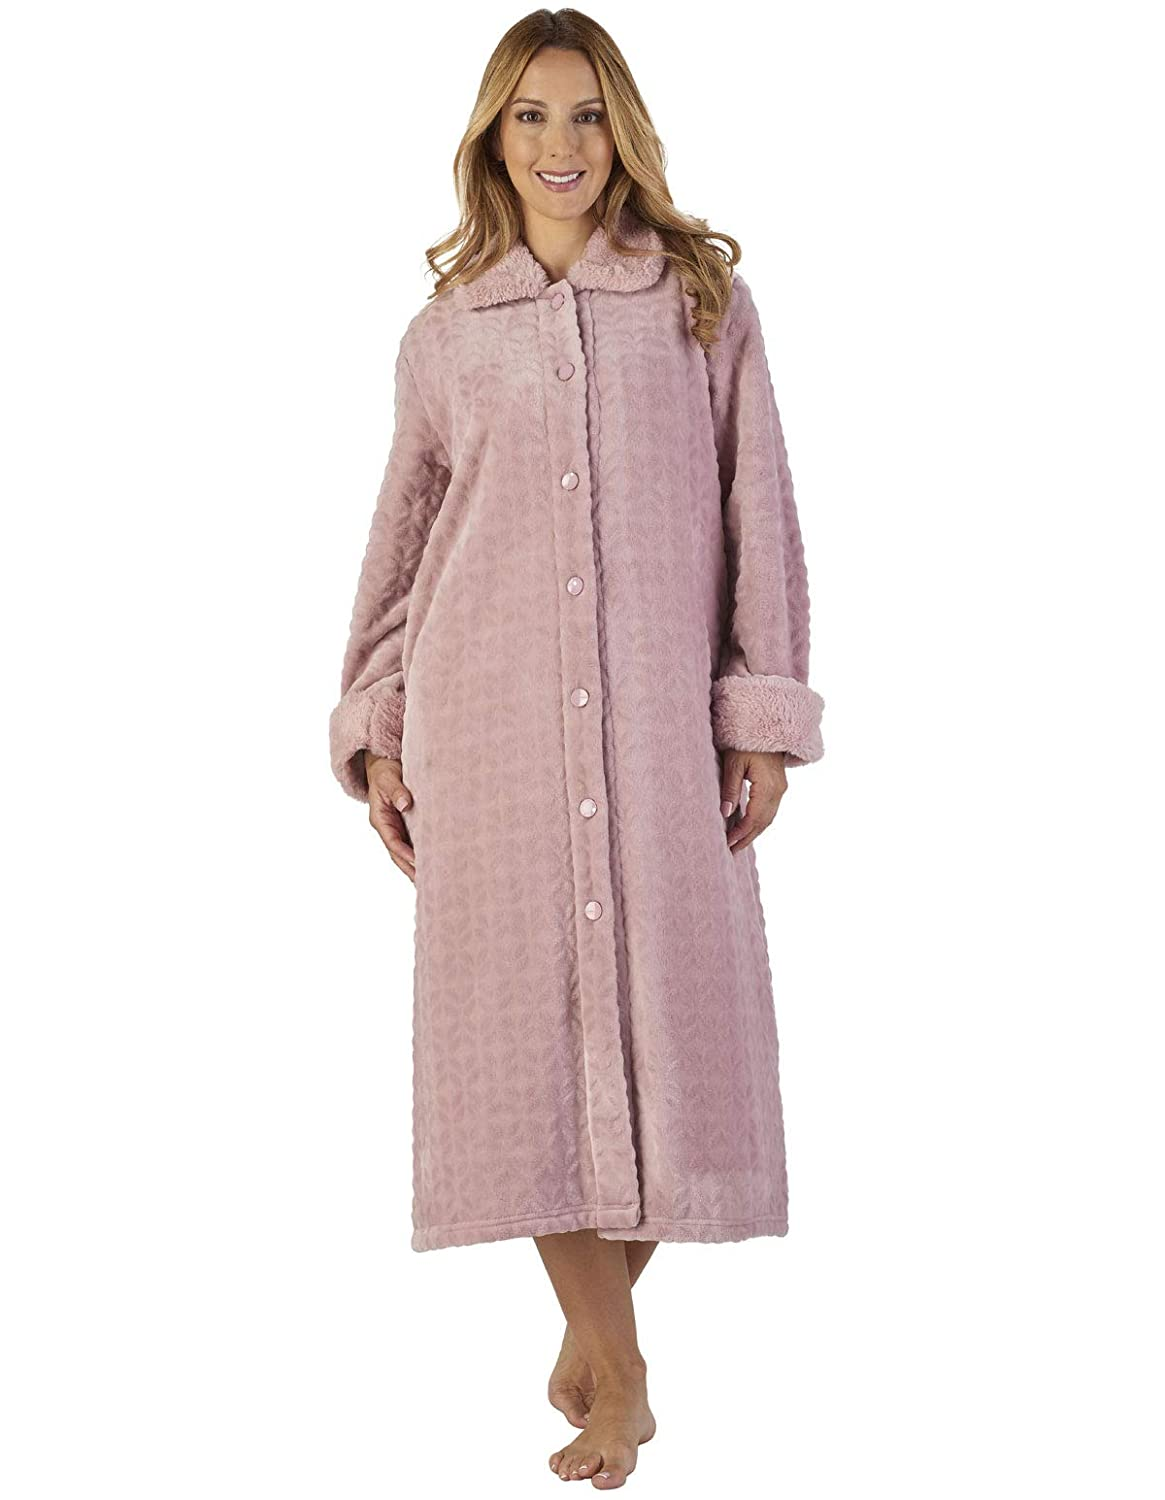 Slenderella HC2341 Women's Faux Collar Robe Loungewear Bath Dressing Gown